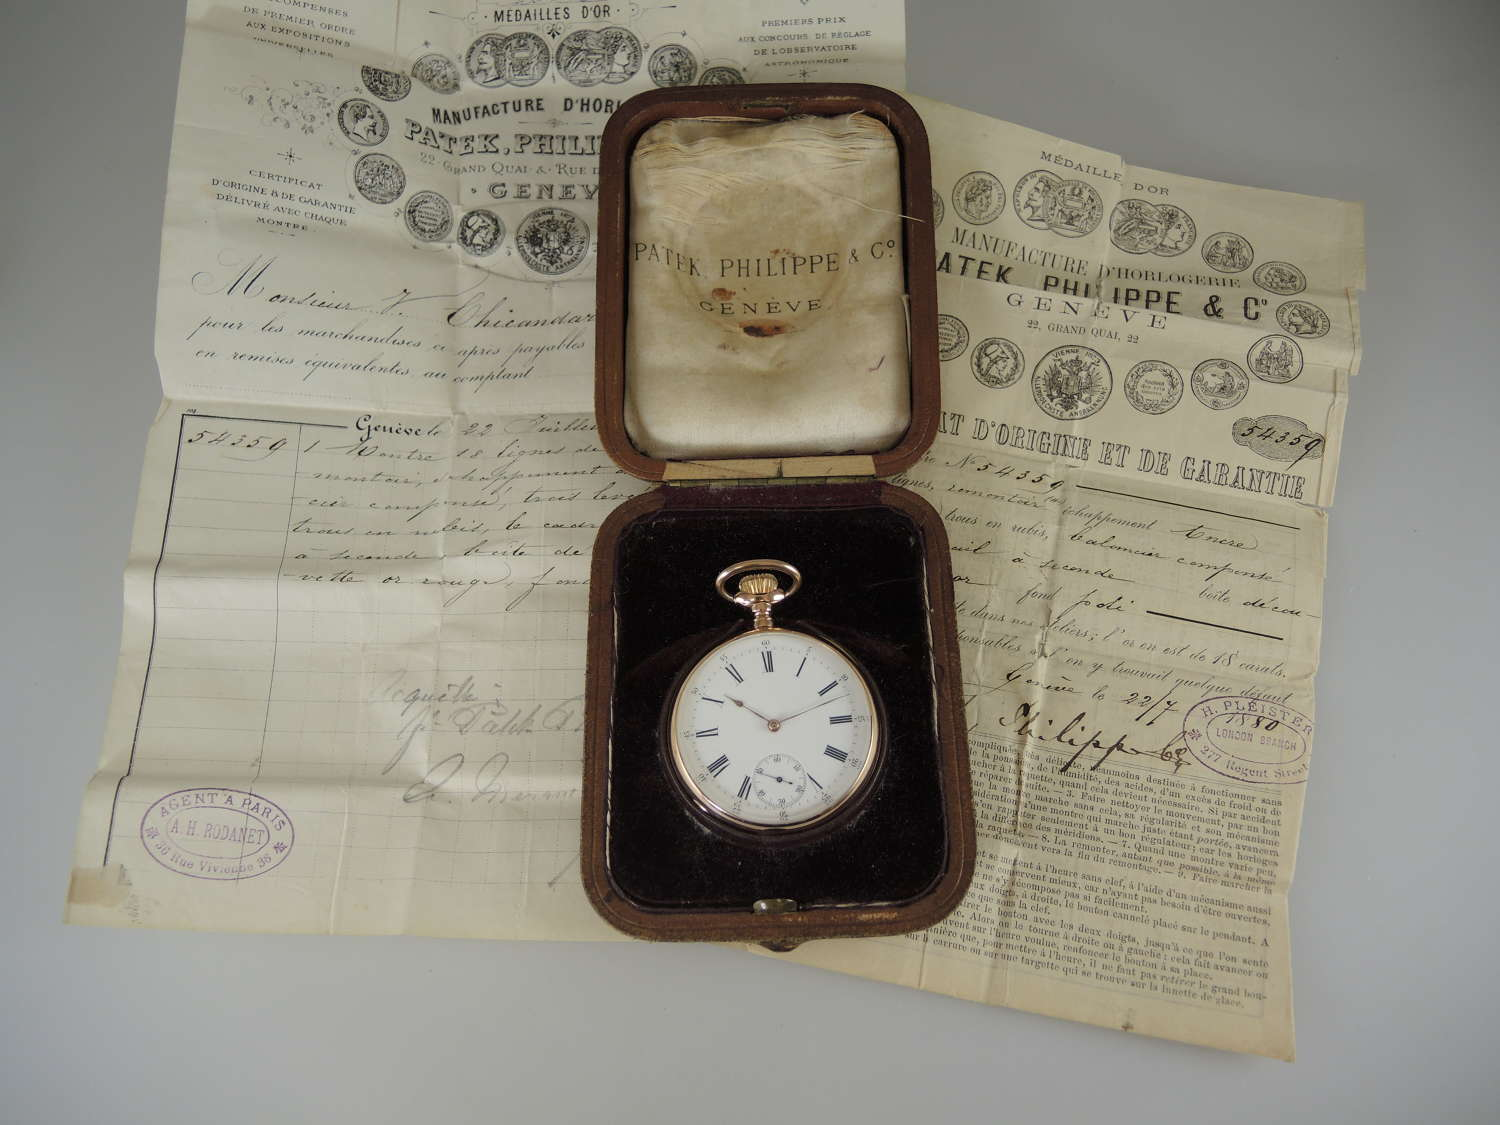 18K Patek Philippe pocket watch with Original box and papers c1880